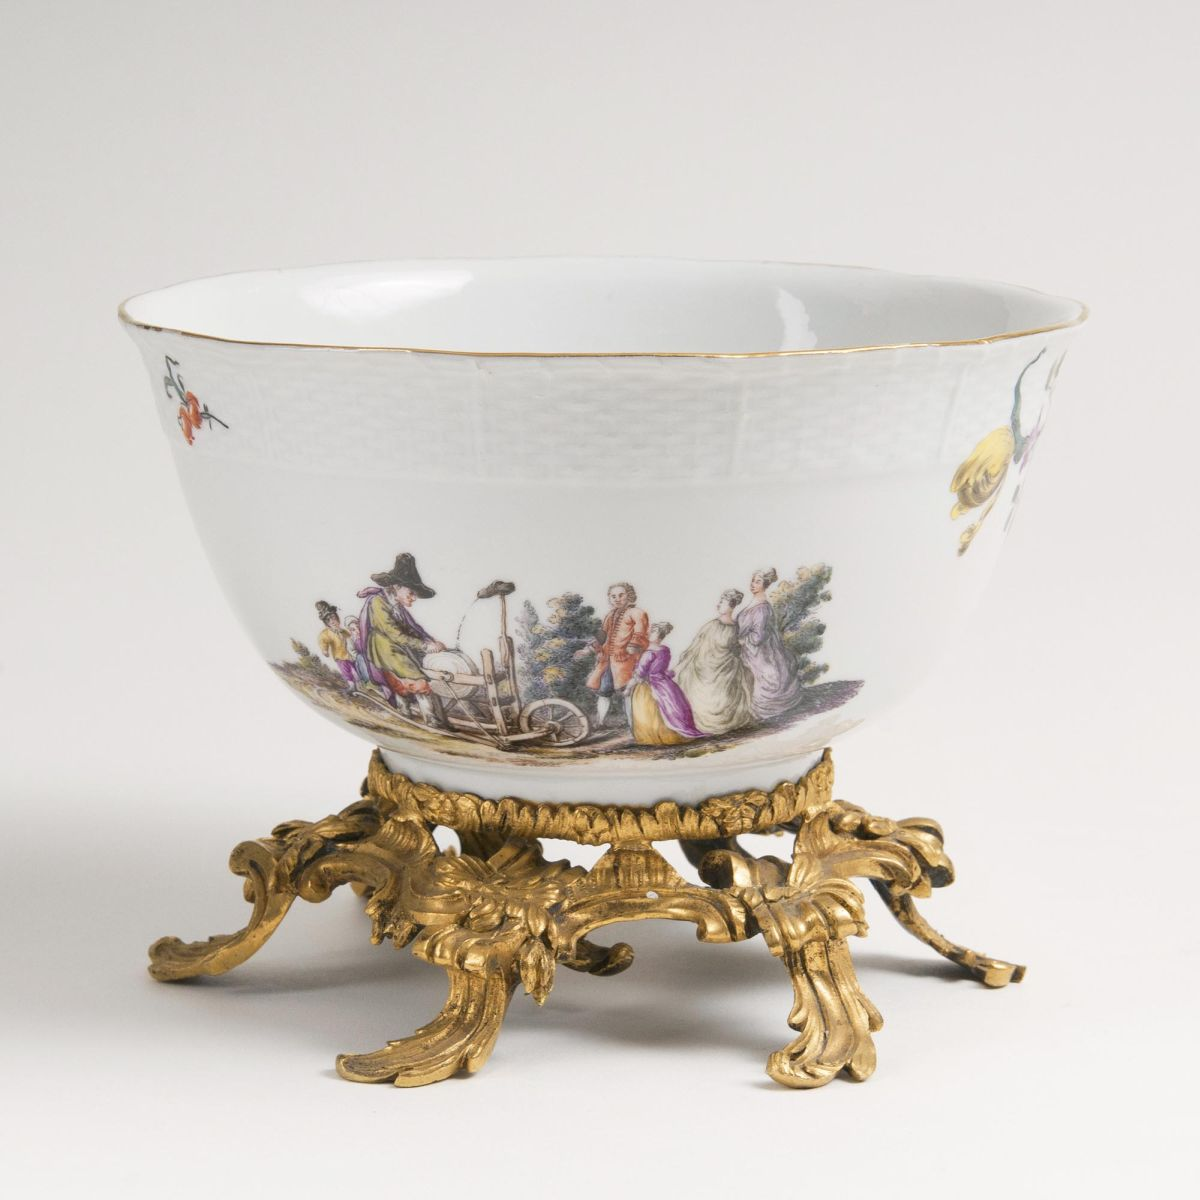 A Rare Bowl with Ormolu Mount